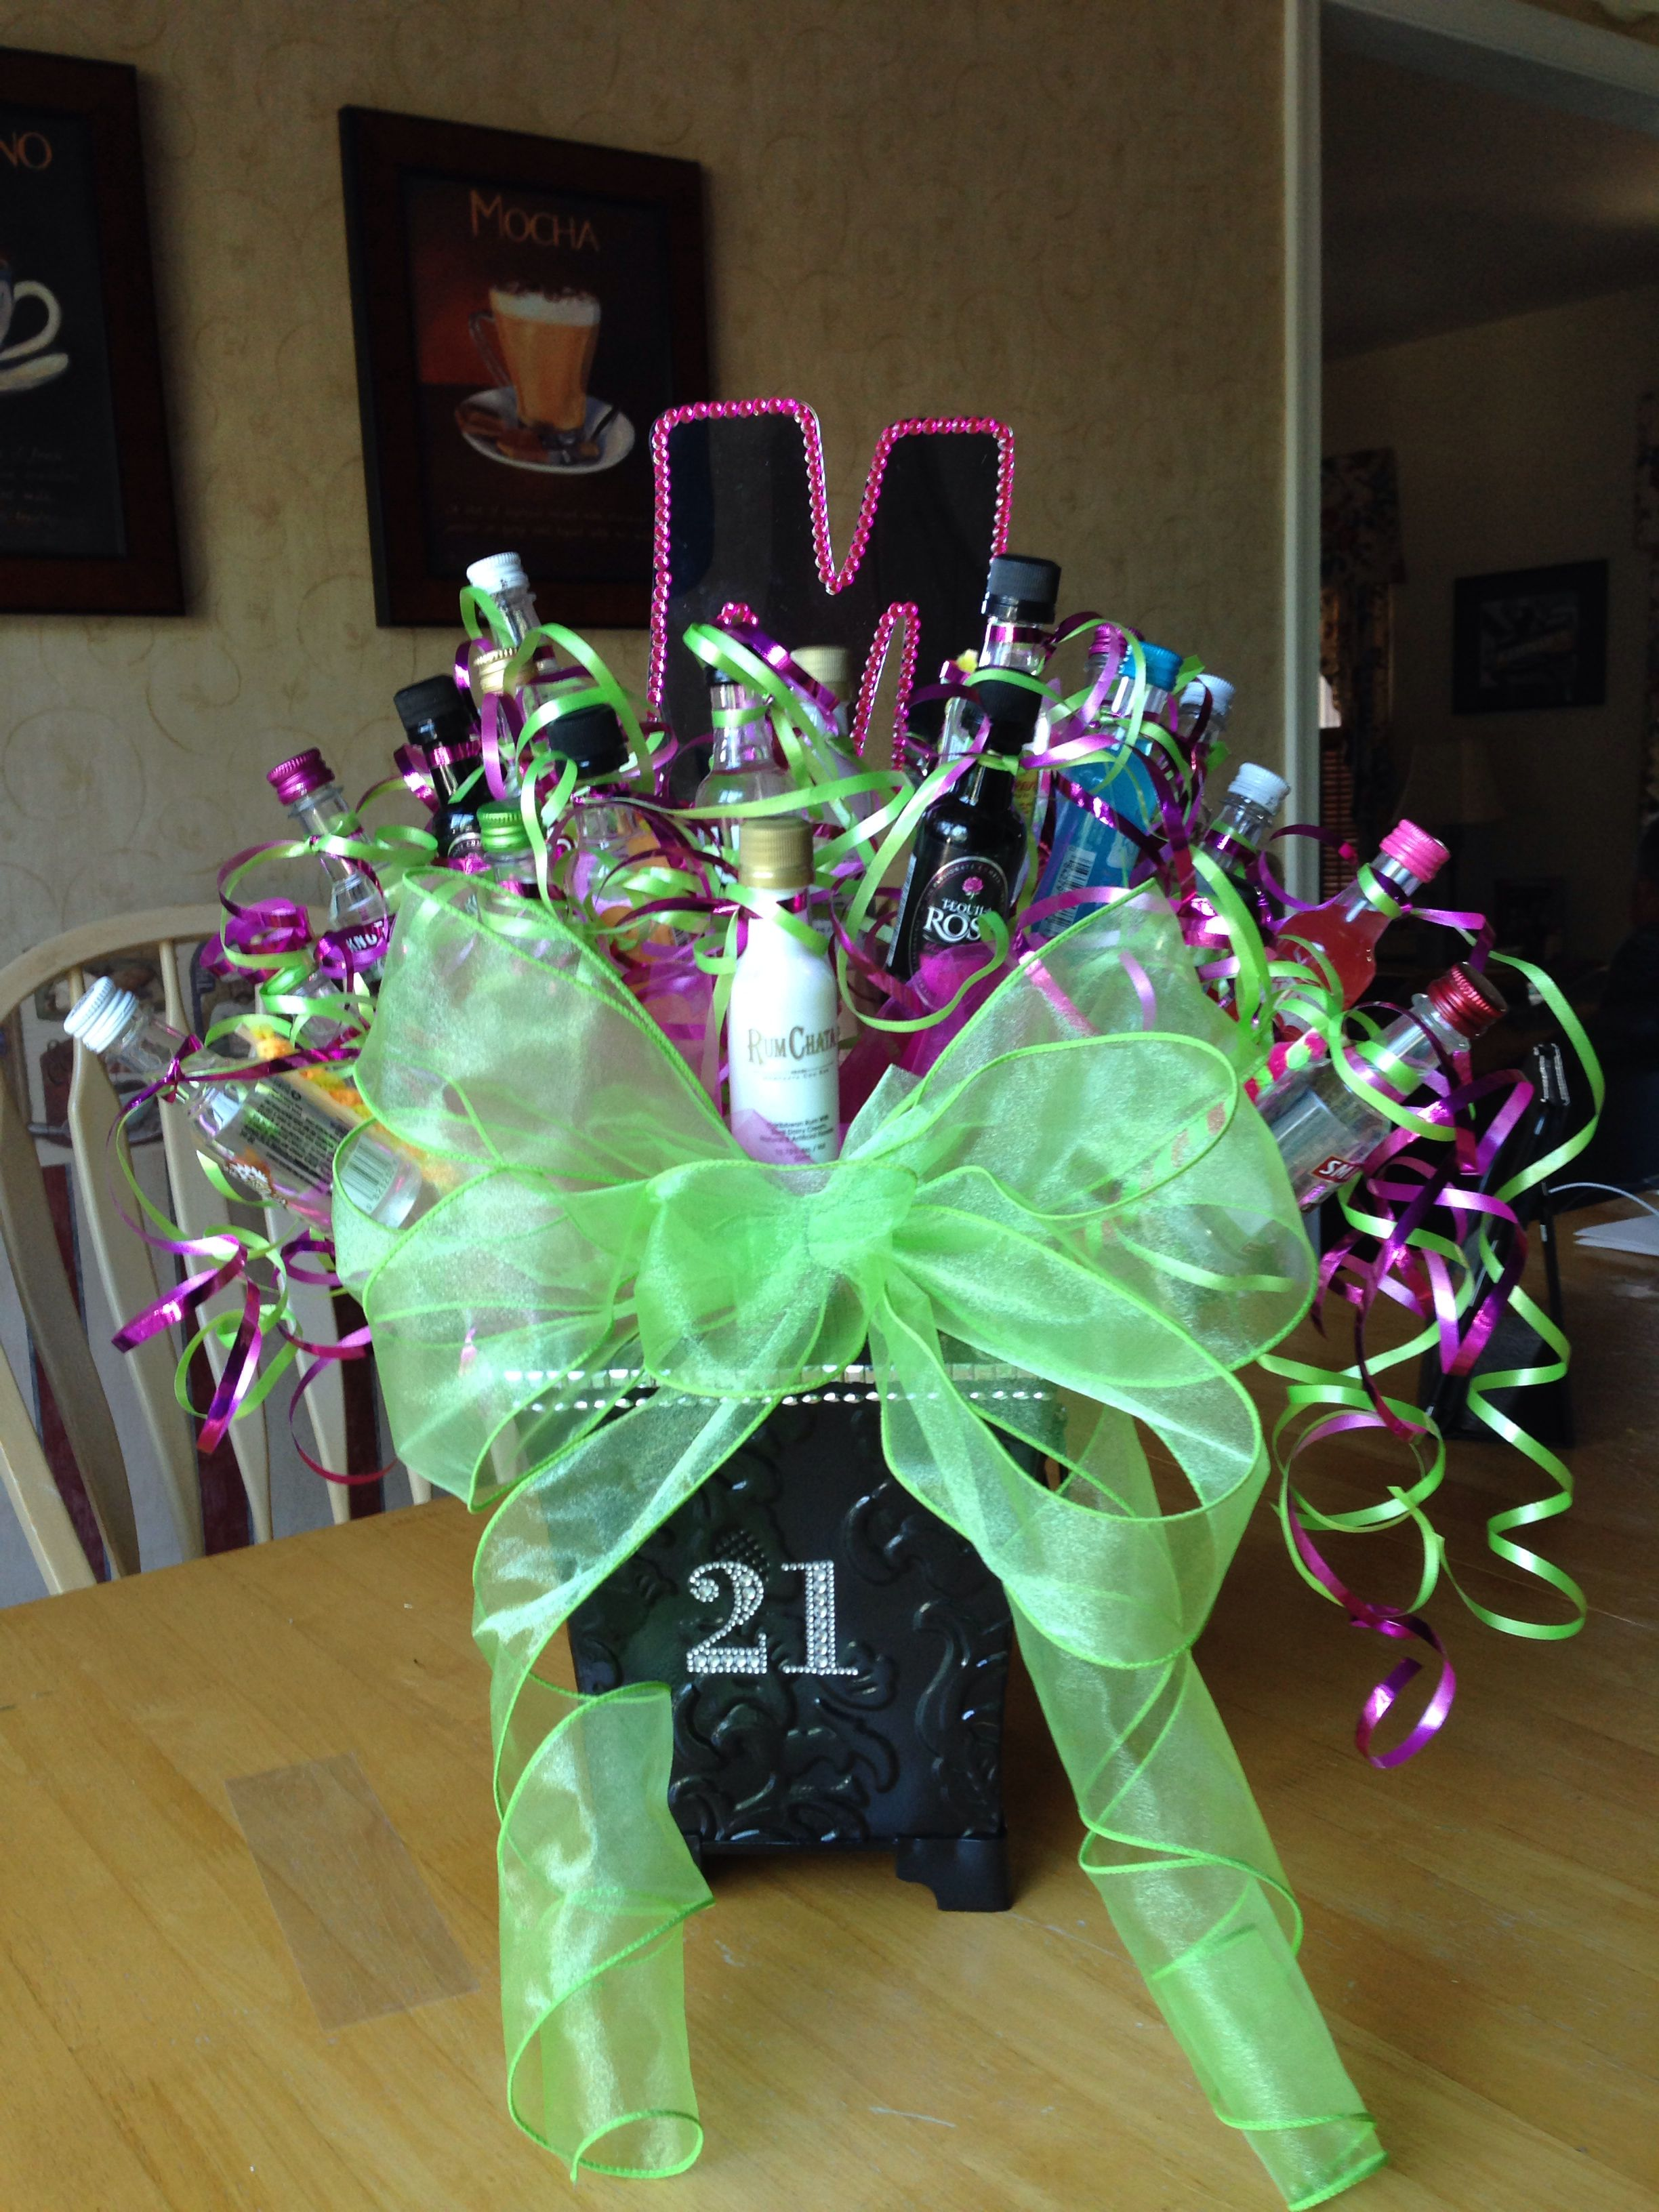 21st Birthday Liquor Bouquet Created For Megan Liquor Bouquet 21st Birthday Gifts Liquor Gifts